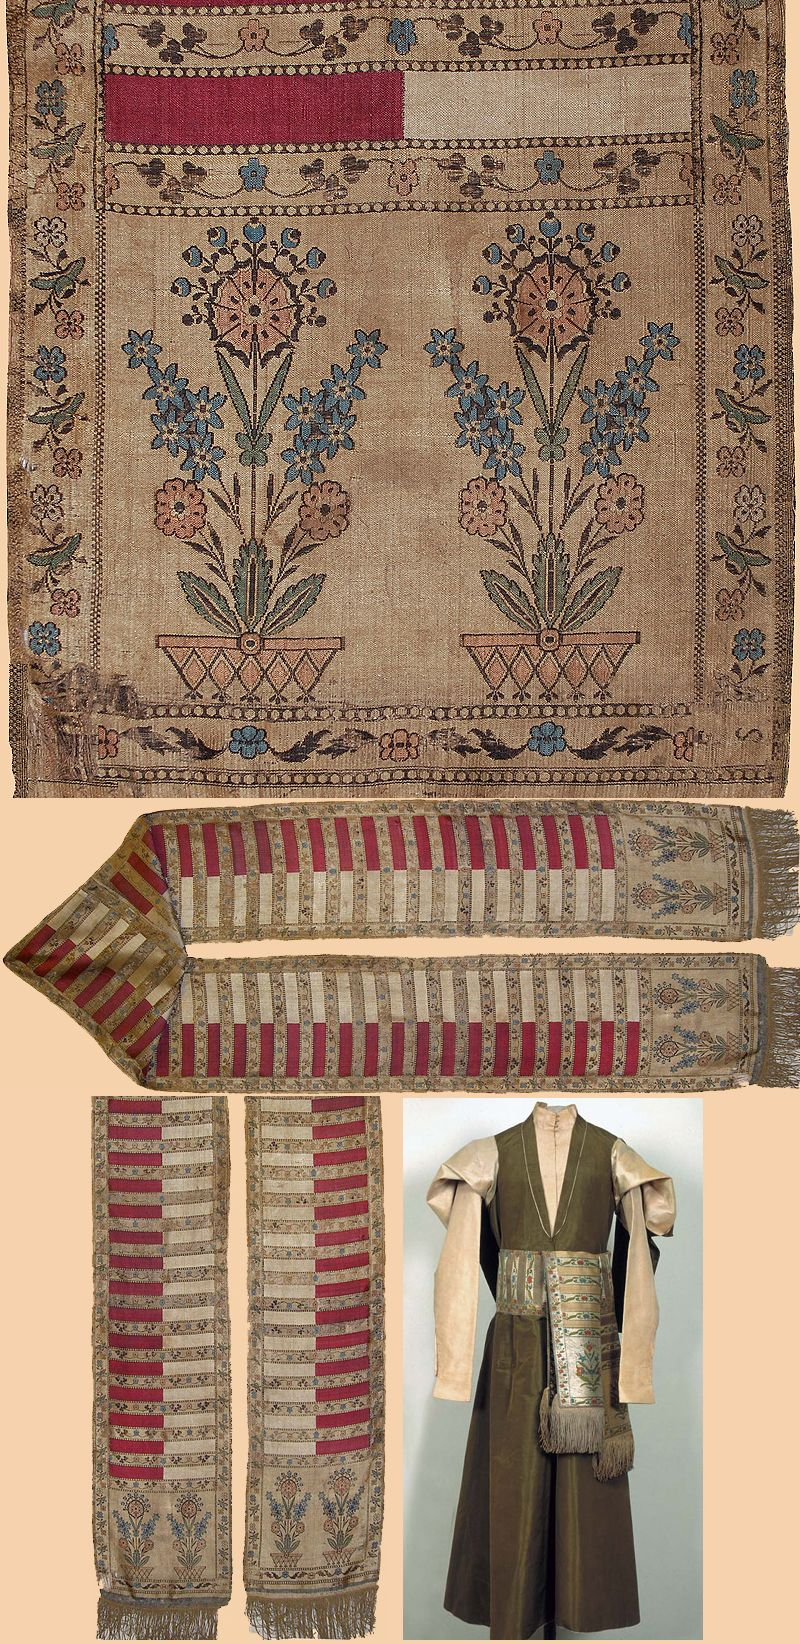 Polish silk sash early th century antique embroidery pieces